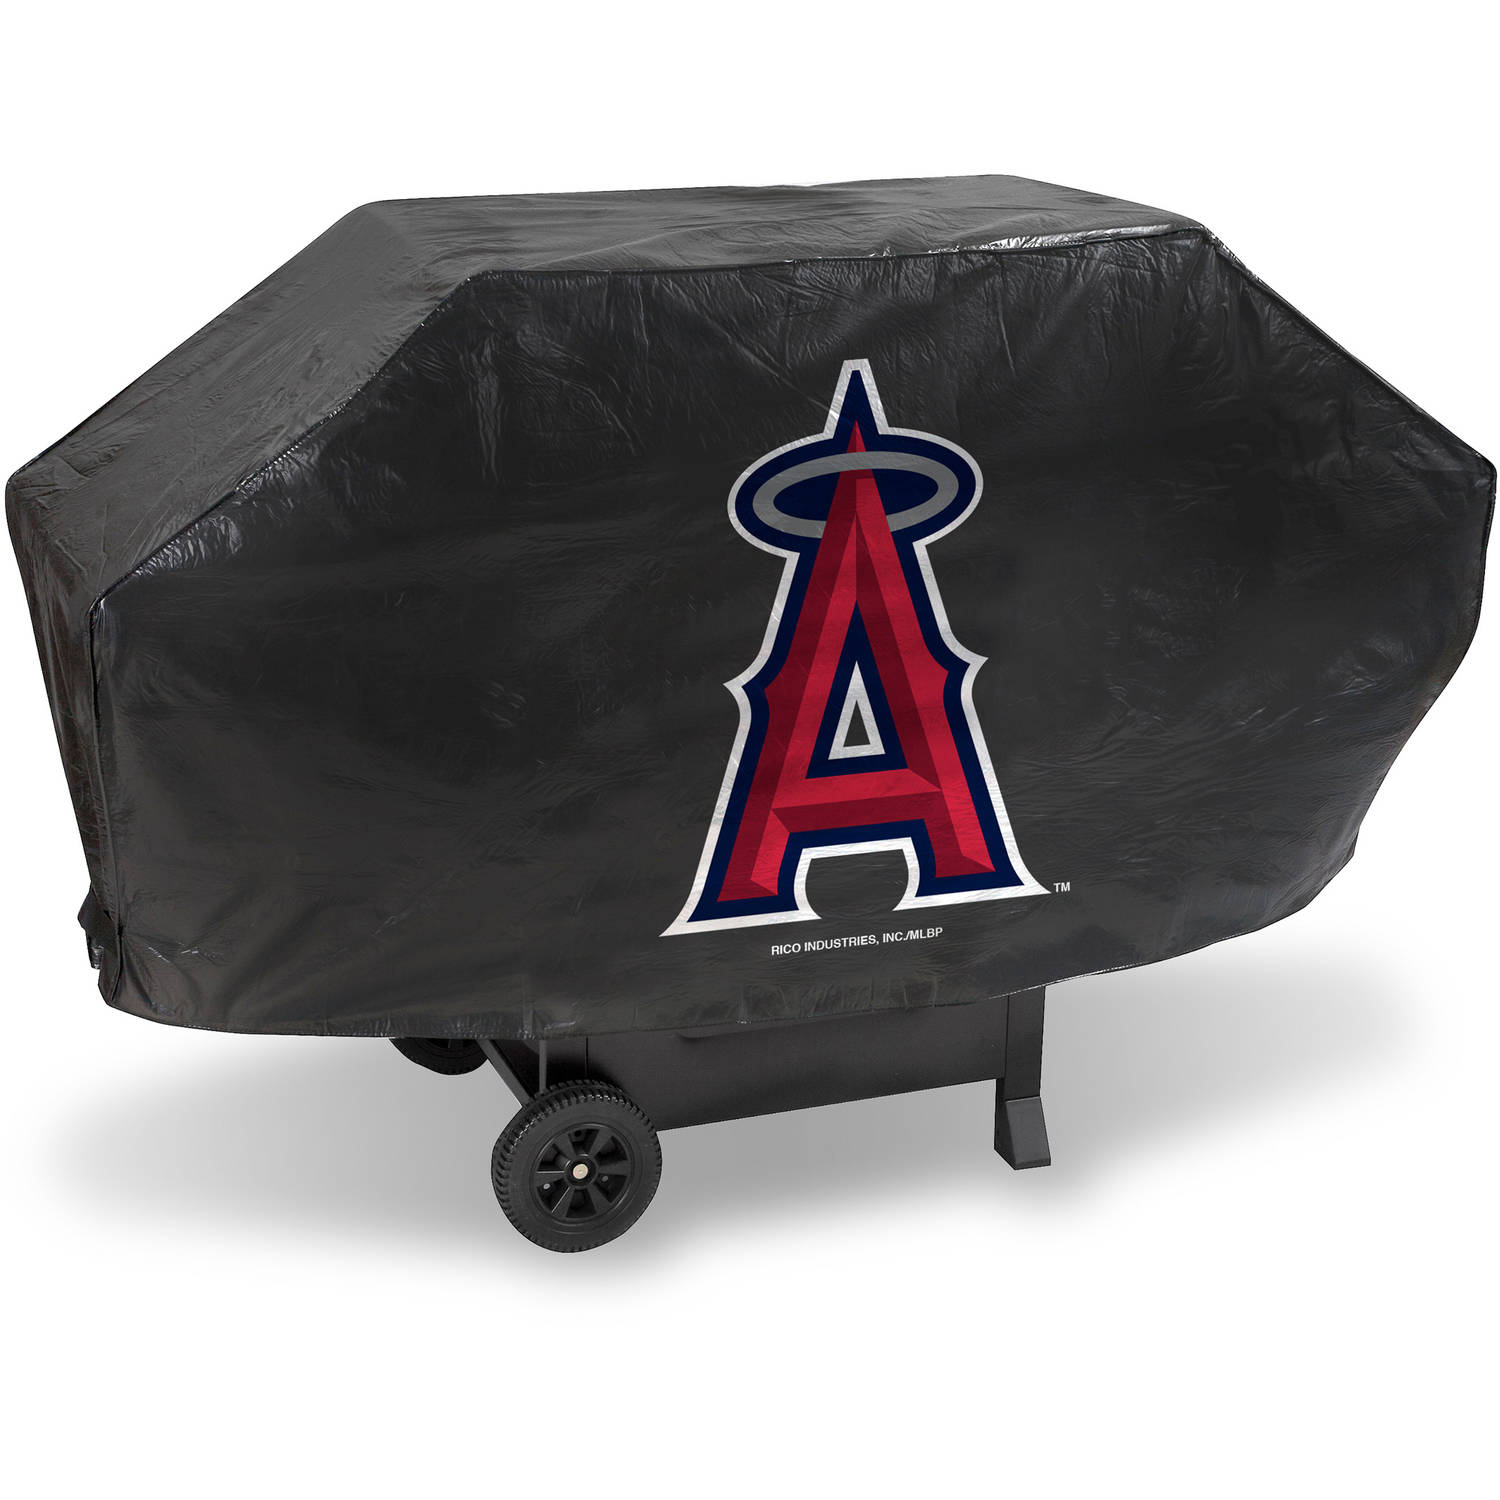 MLB Rico Industries Deluxe Grill Cover, Los Angeles Angels